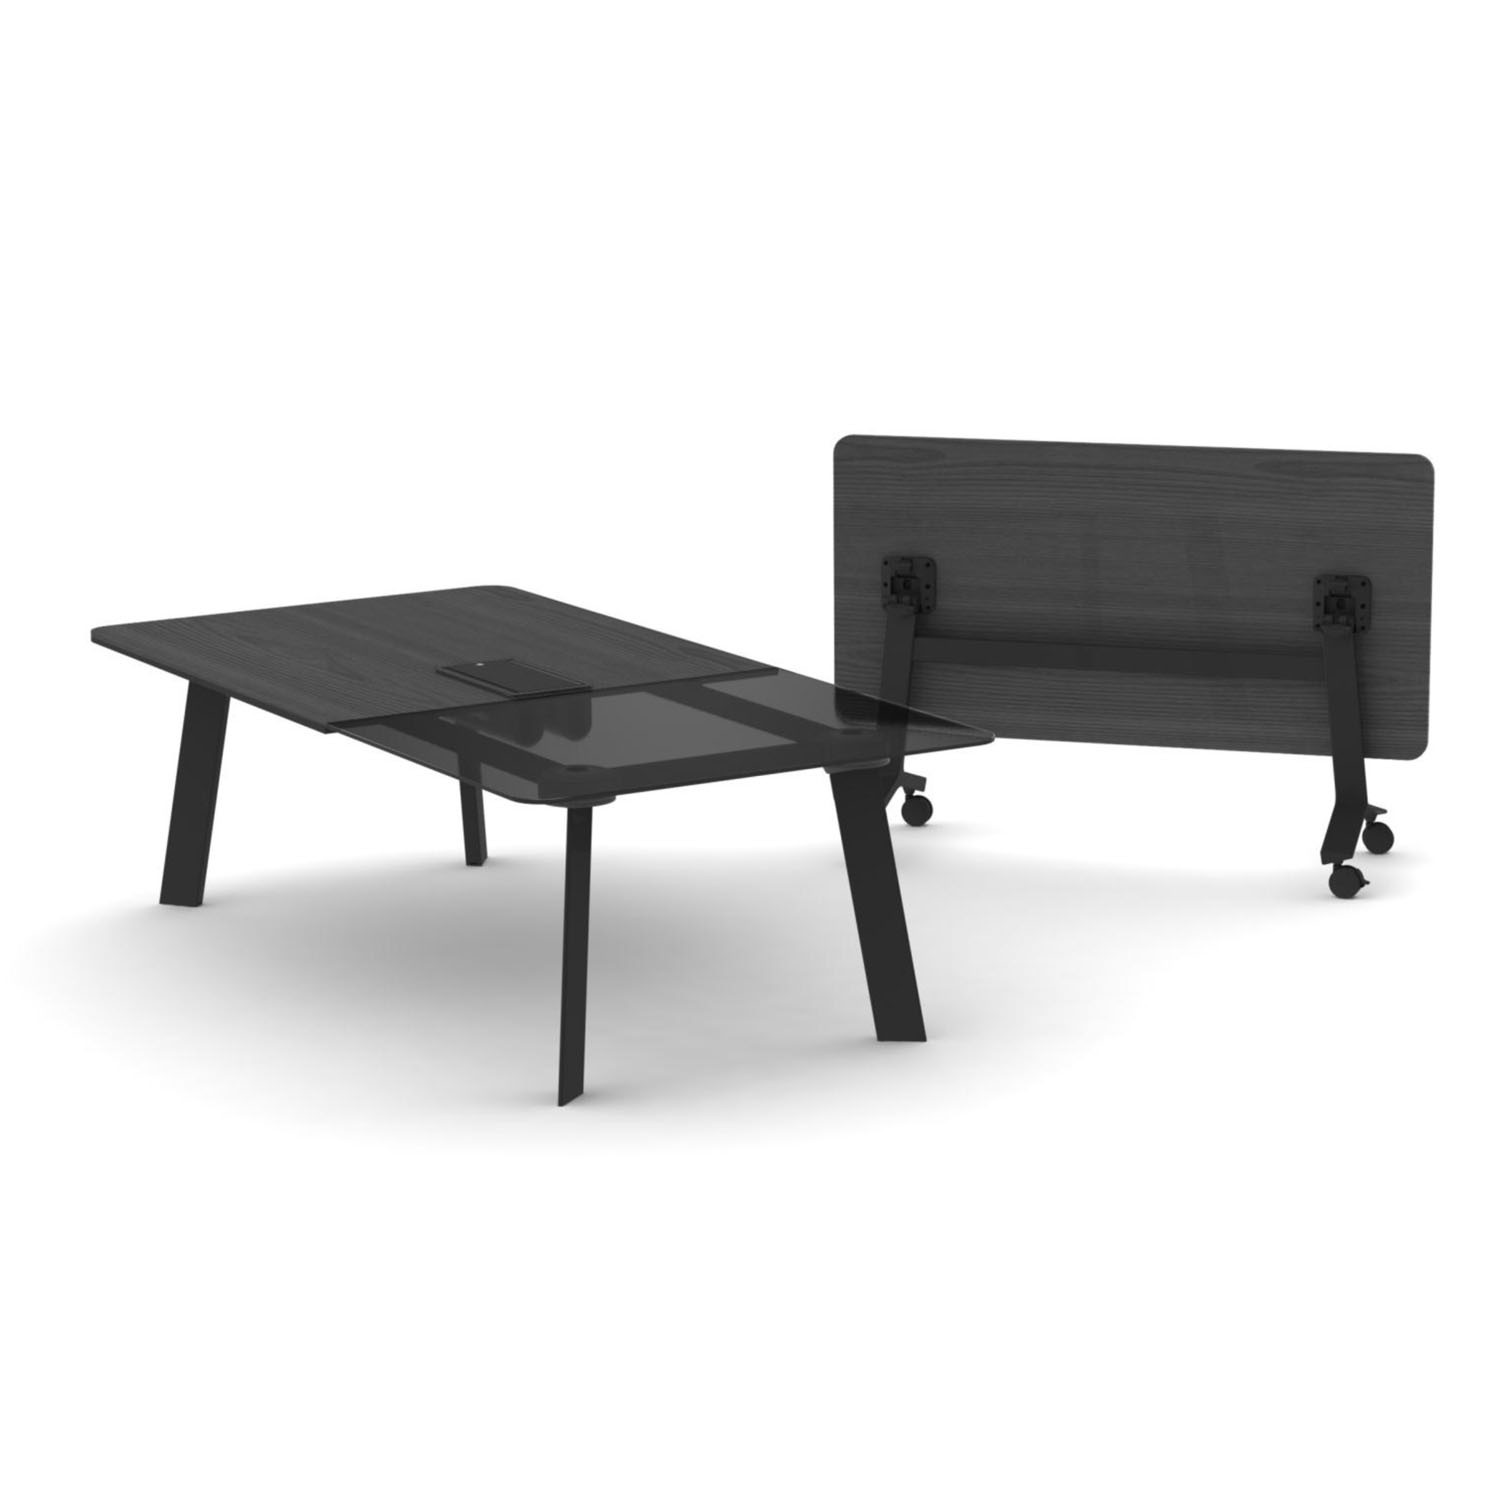 Blade Tilting Top Table